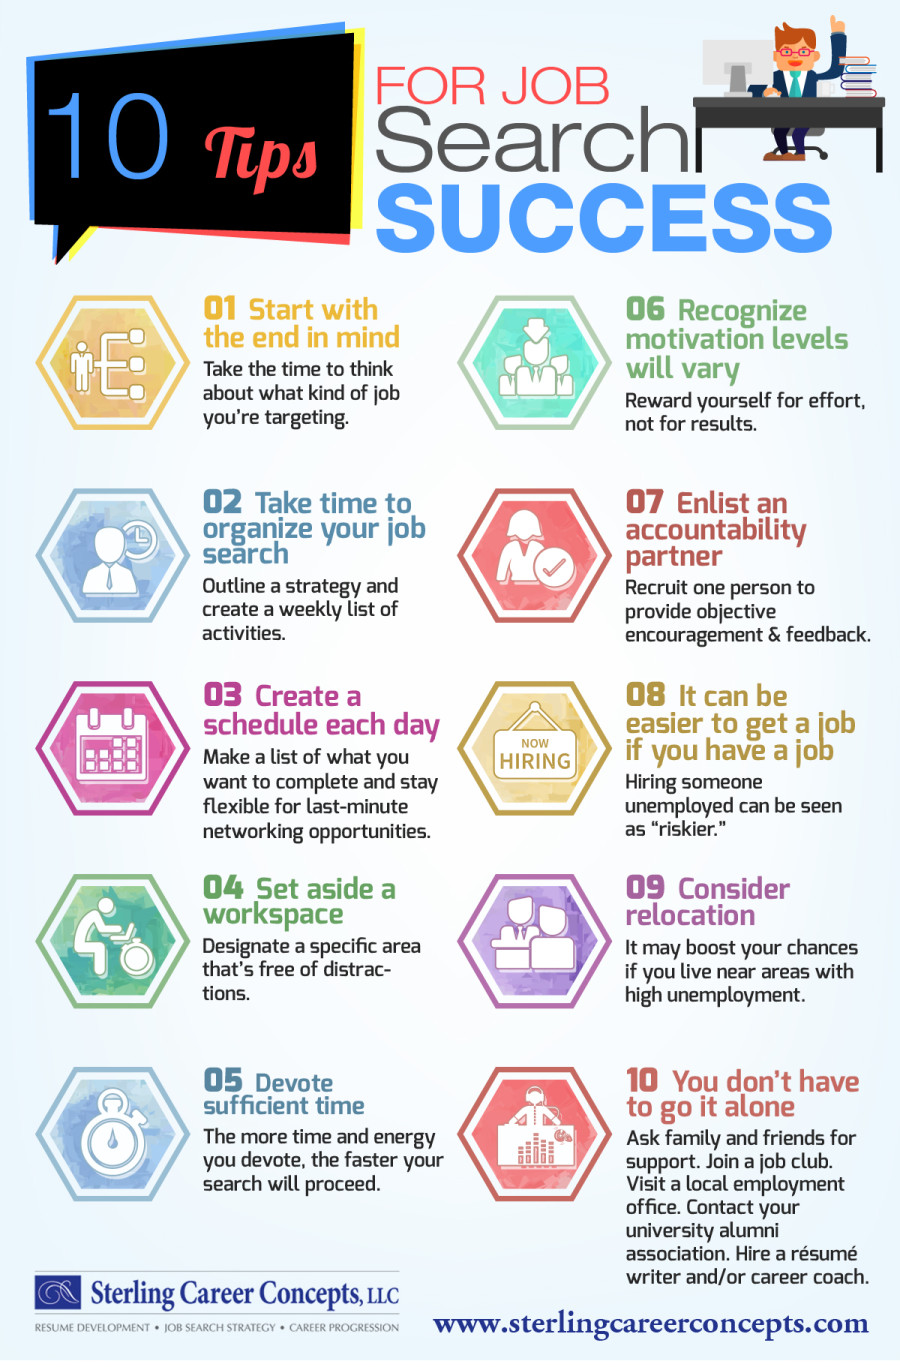 10 Tips for Job Search Success #infographic #Career #Jobs #Success #infographics #Job Search Success #Infographic